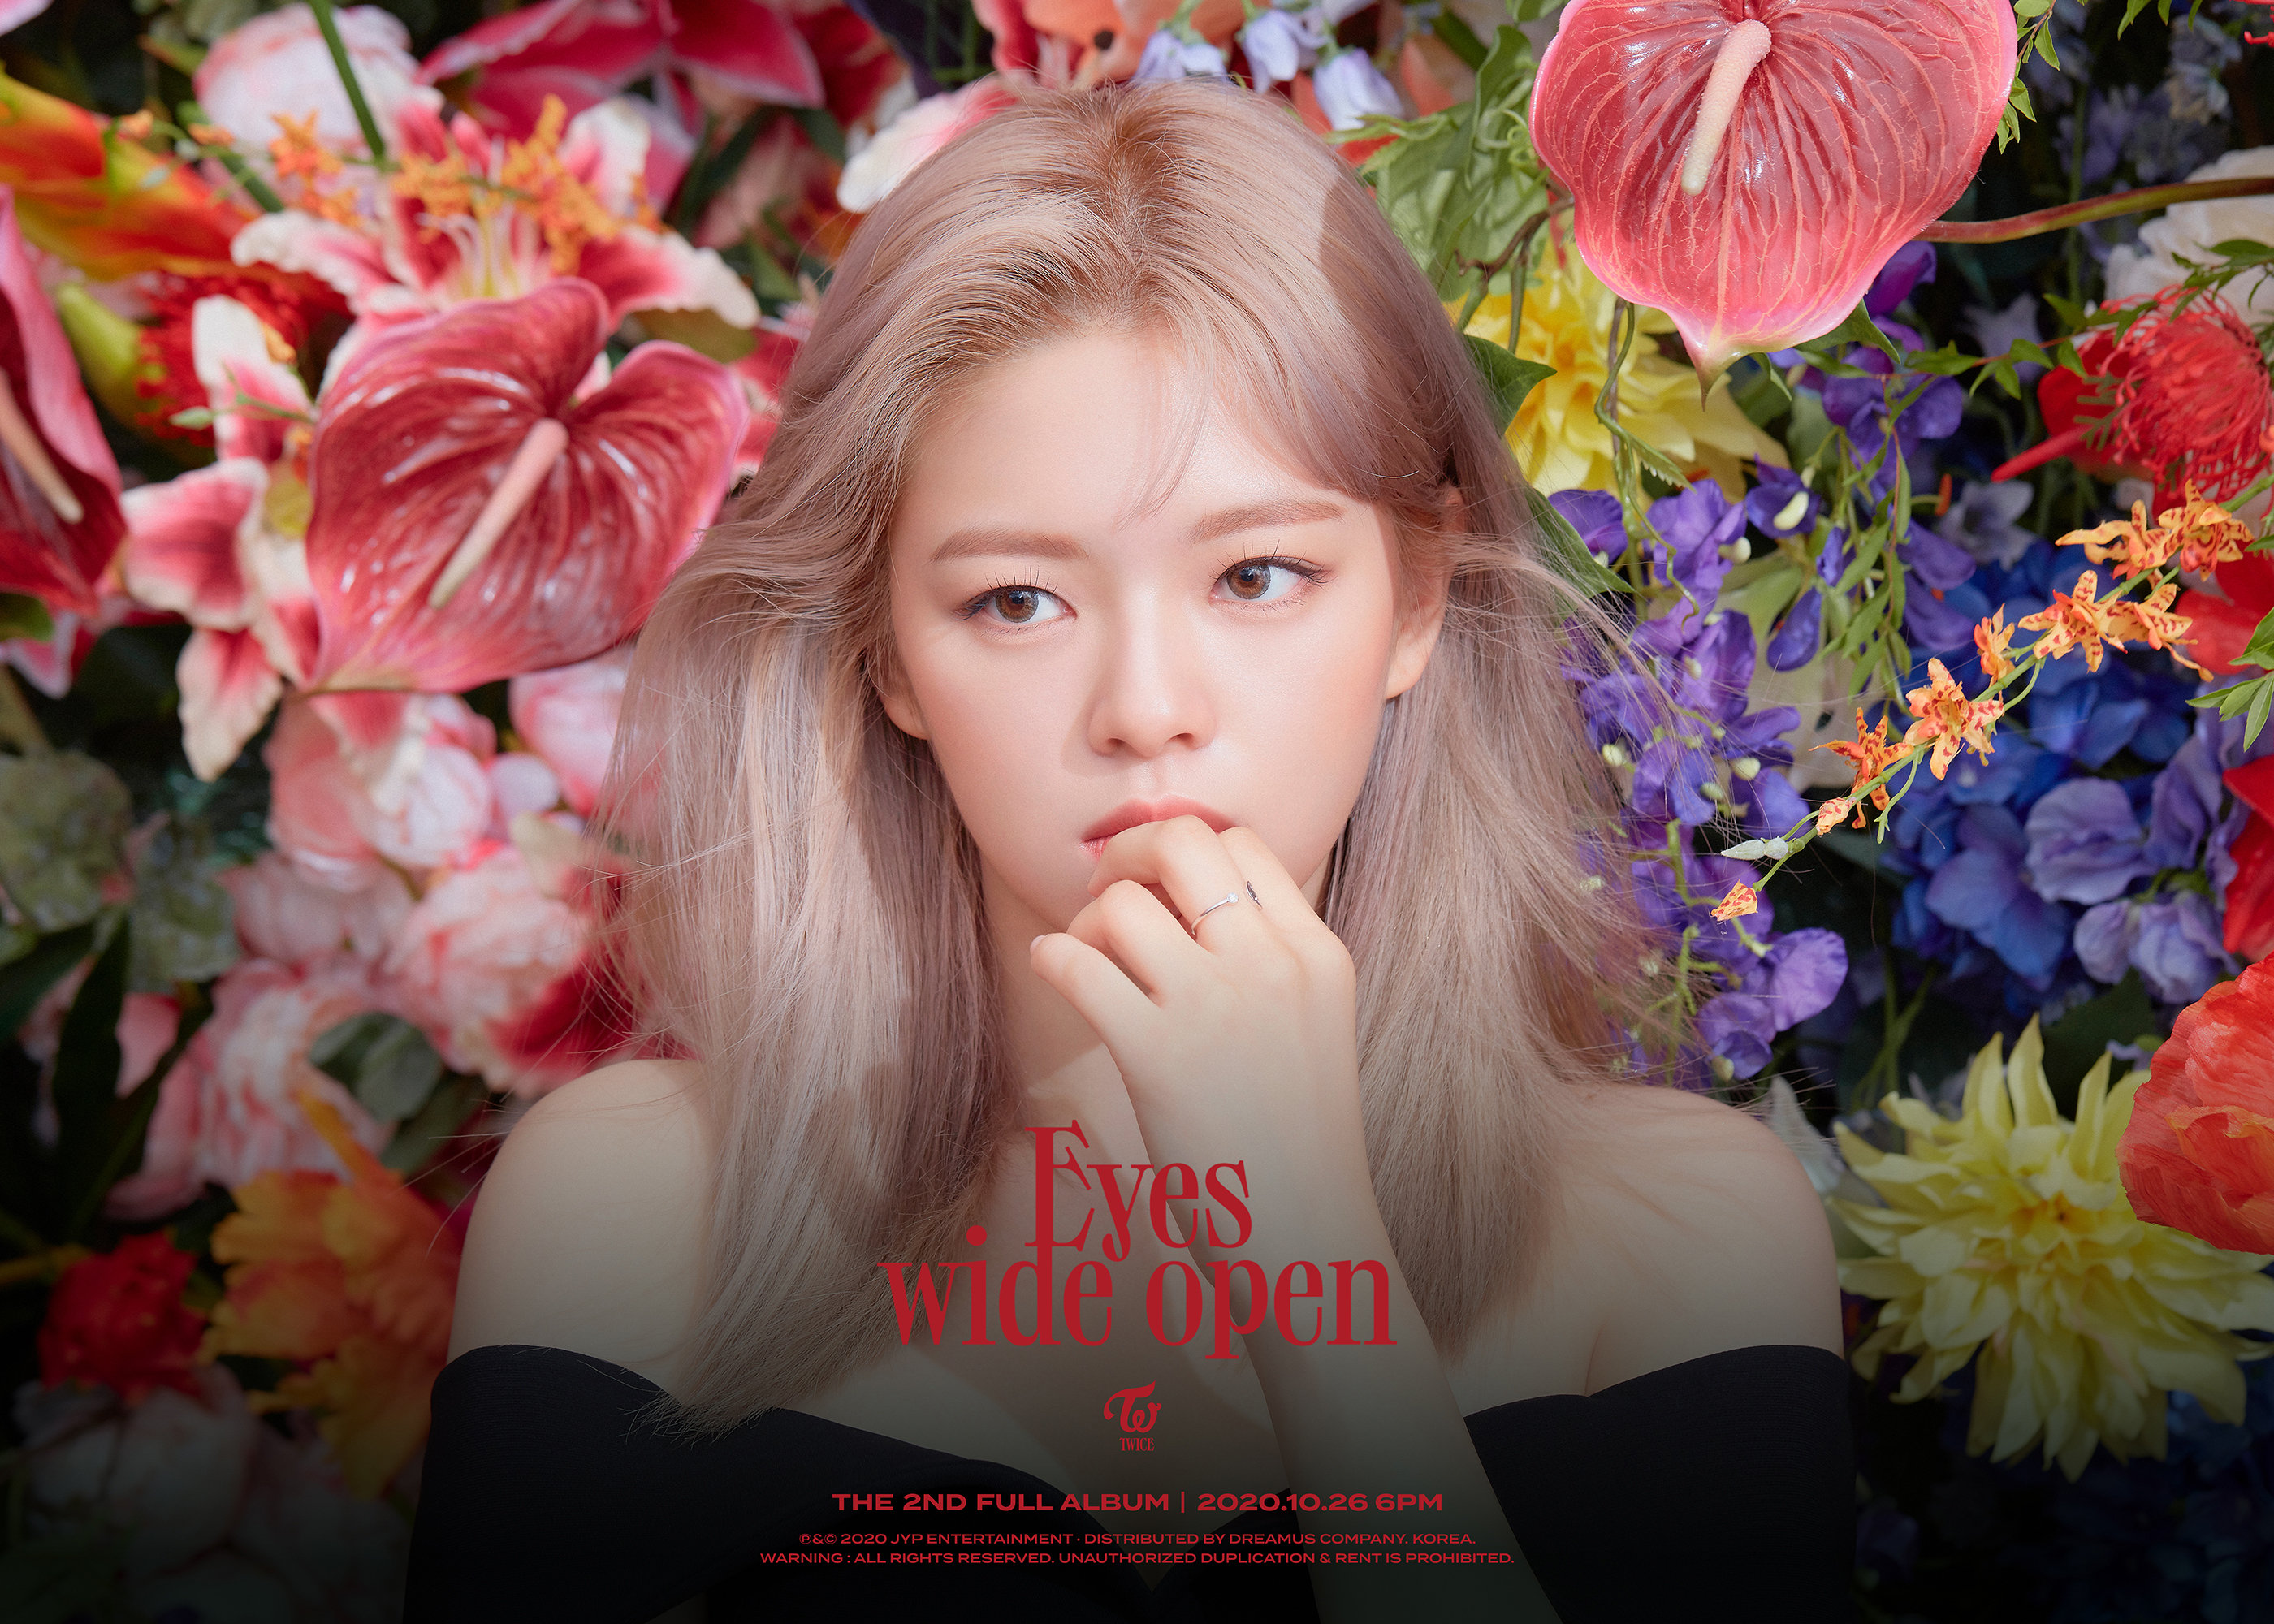 TWICE Eyes Wide Open Jeongyeon Teasers (HD/HQ)